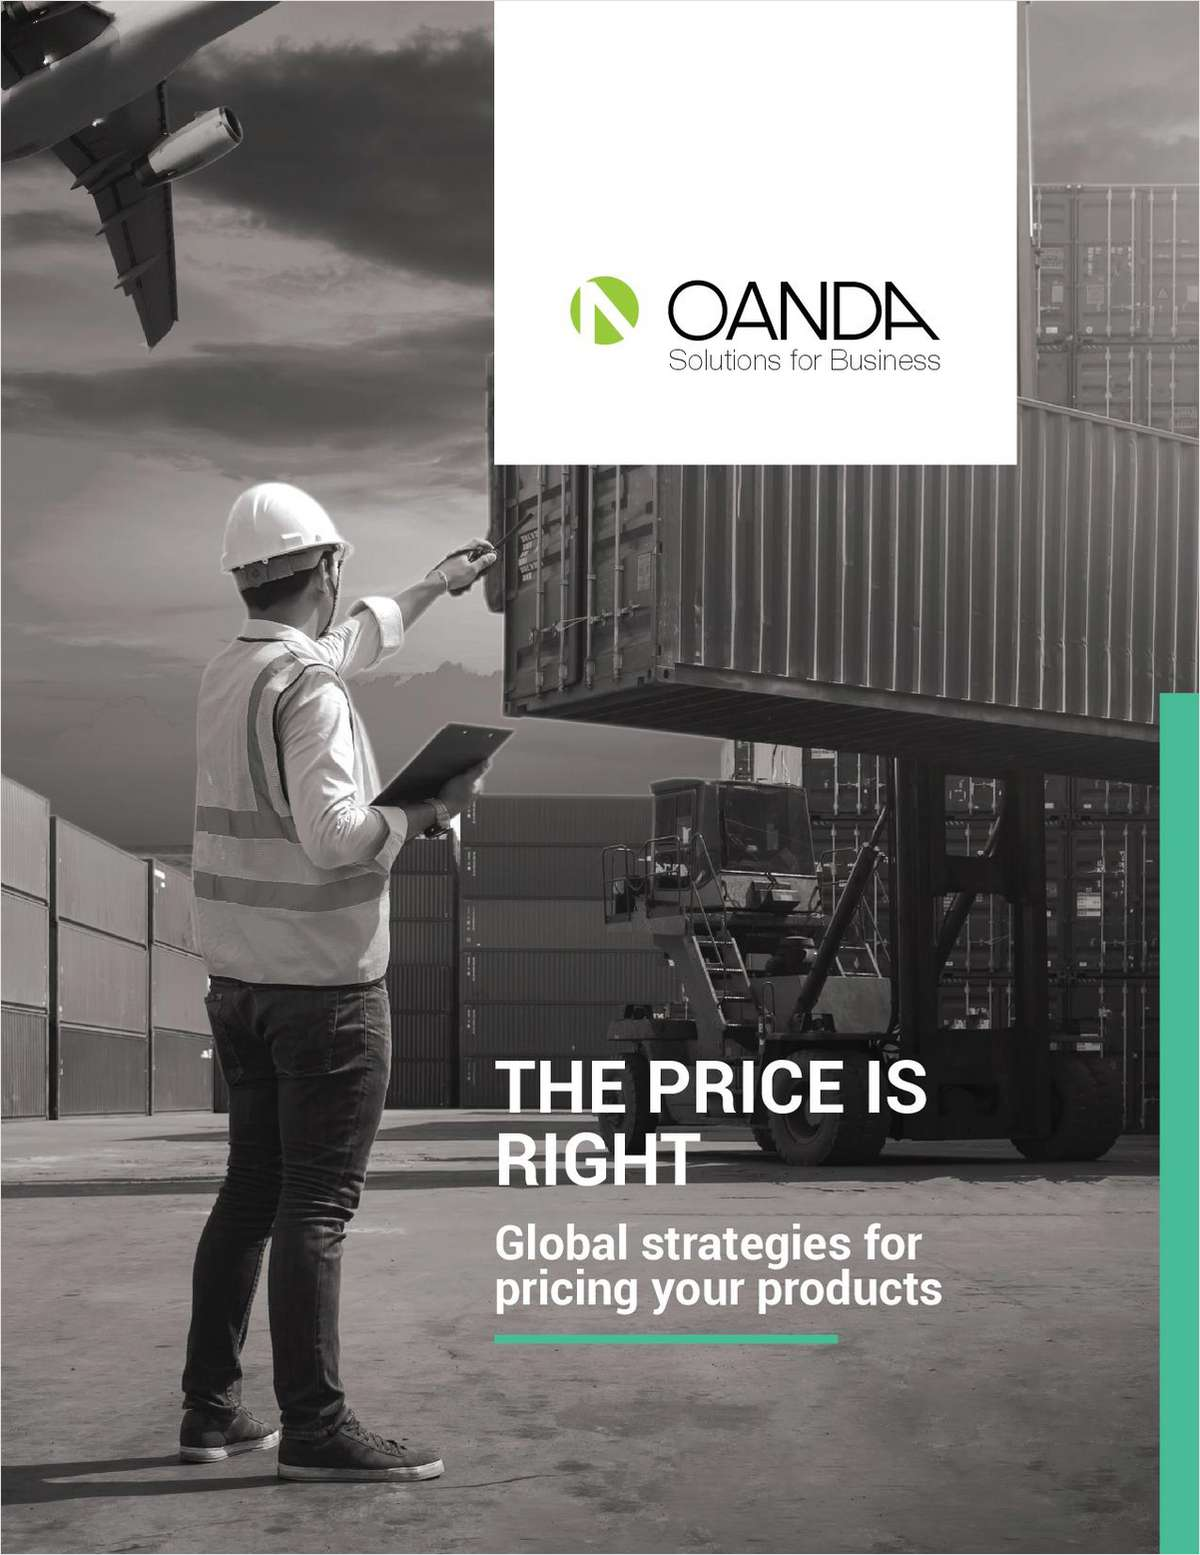 The Price is Right: Global Strategies for Pricing Your Products